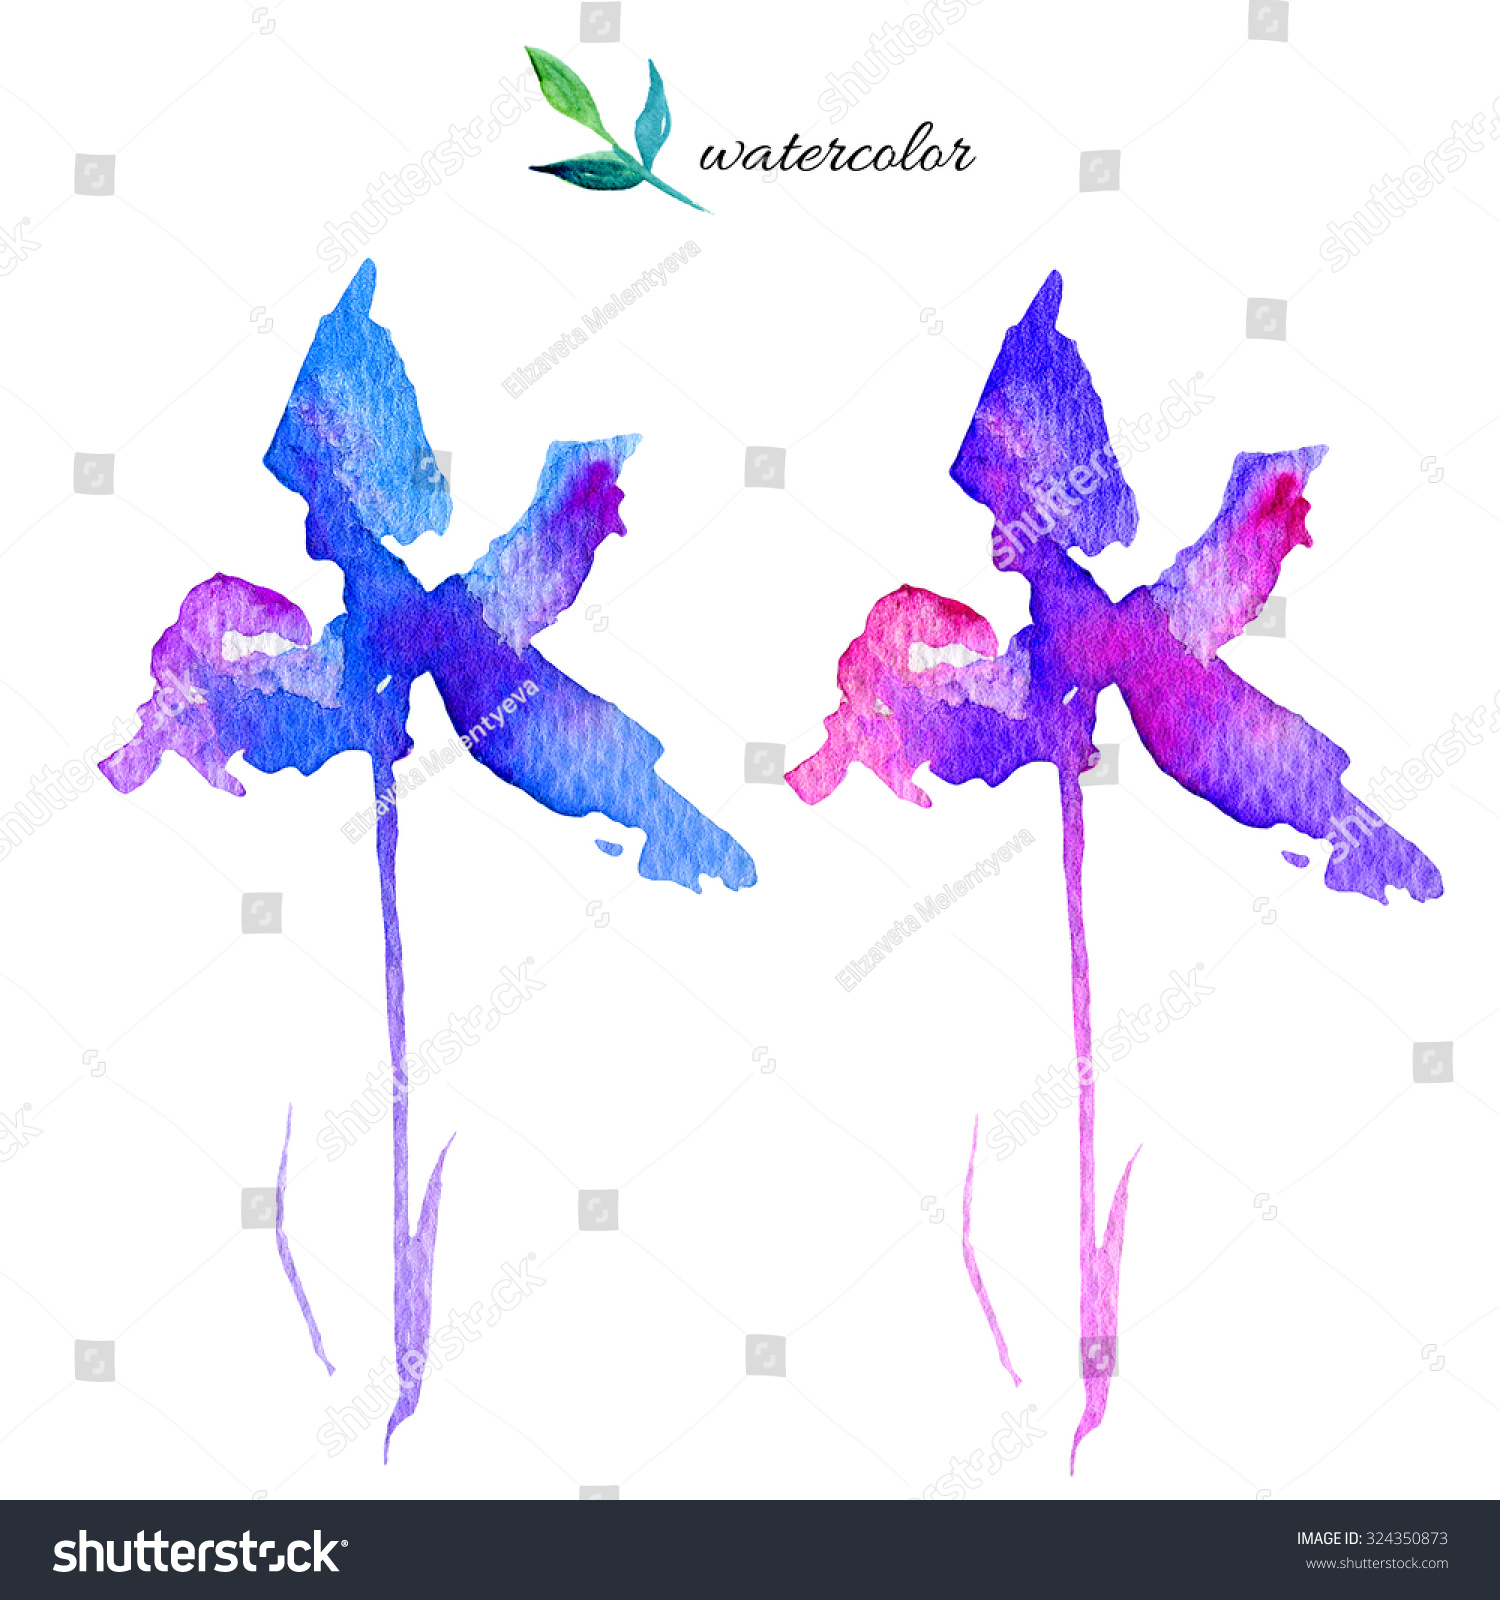 Watercolor abstract iris flowers isolated on stock illustration watercolor abstract iris flowers isolated on white background floral elements hand drawn artistic painting izmirmasajfo